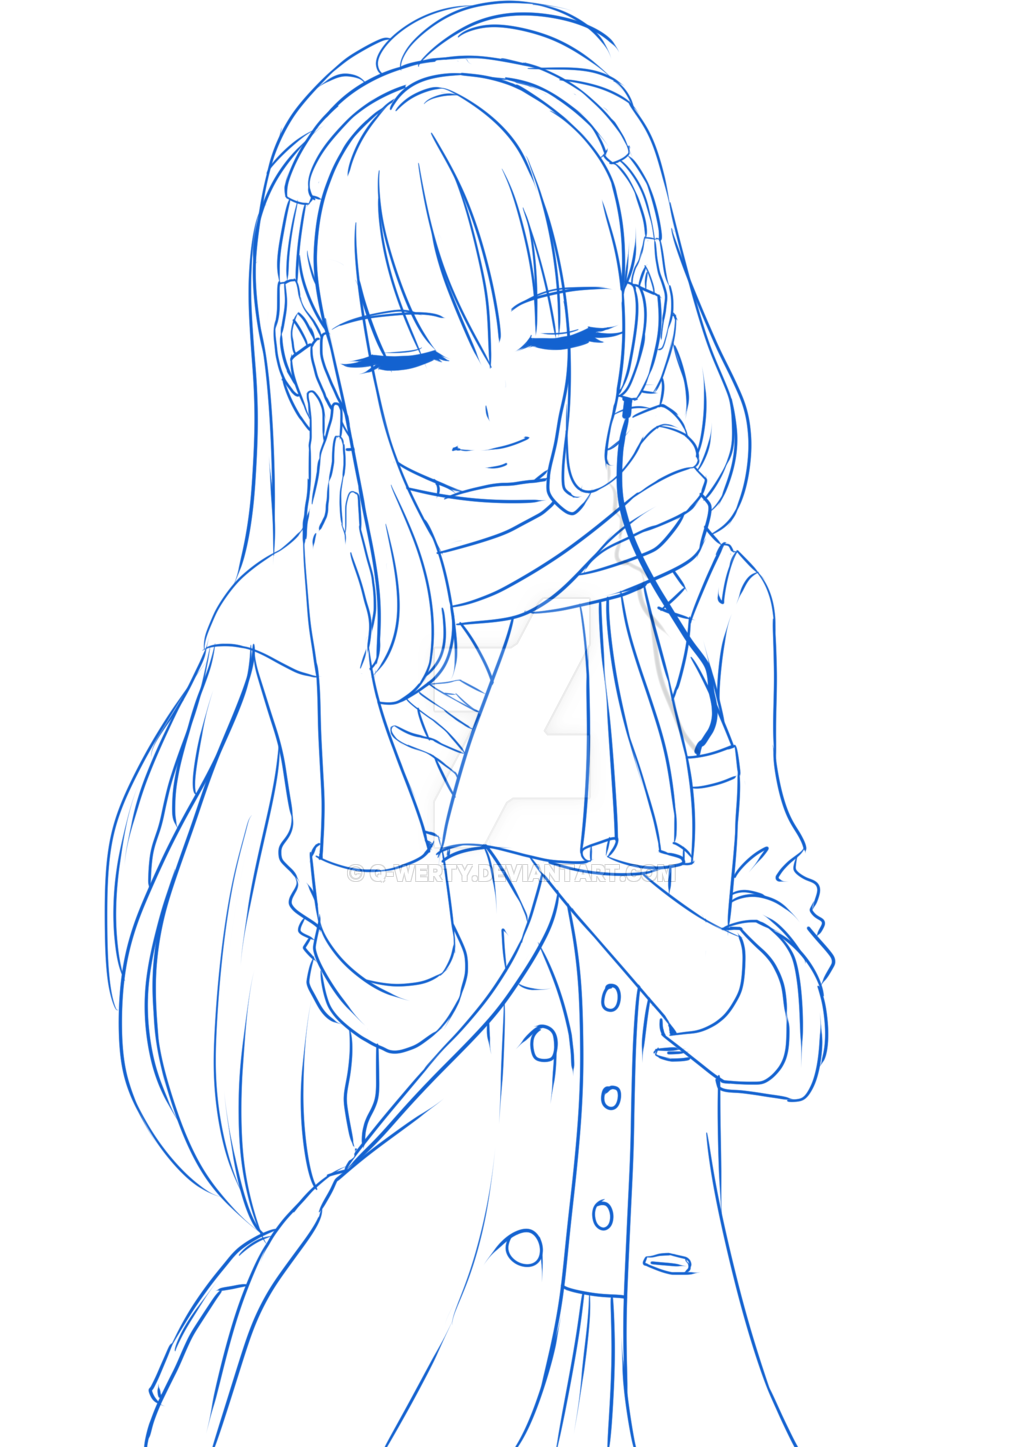 girl_headphones_lineart_blue_by_q_wertyd7rfkq5.png (1024